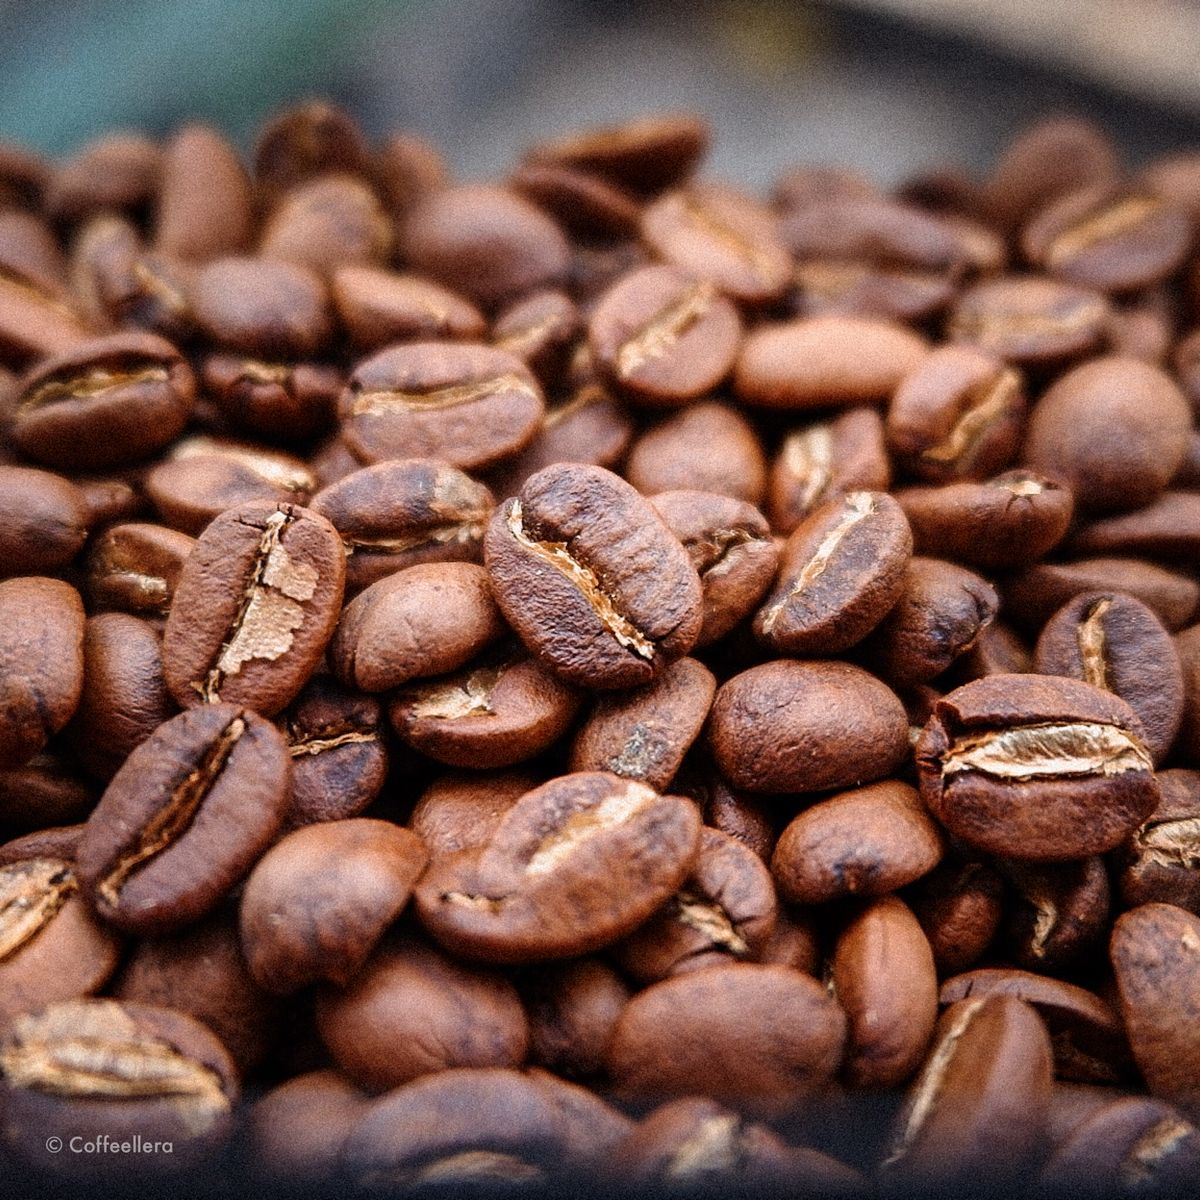 Philippine coffee beans in 2020 Coffee, Coffee beans